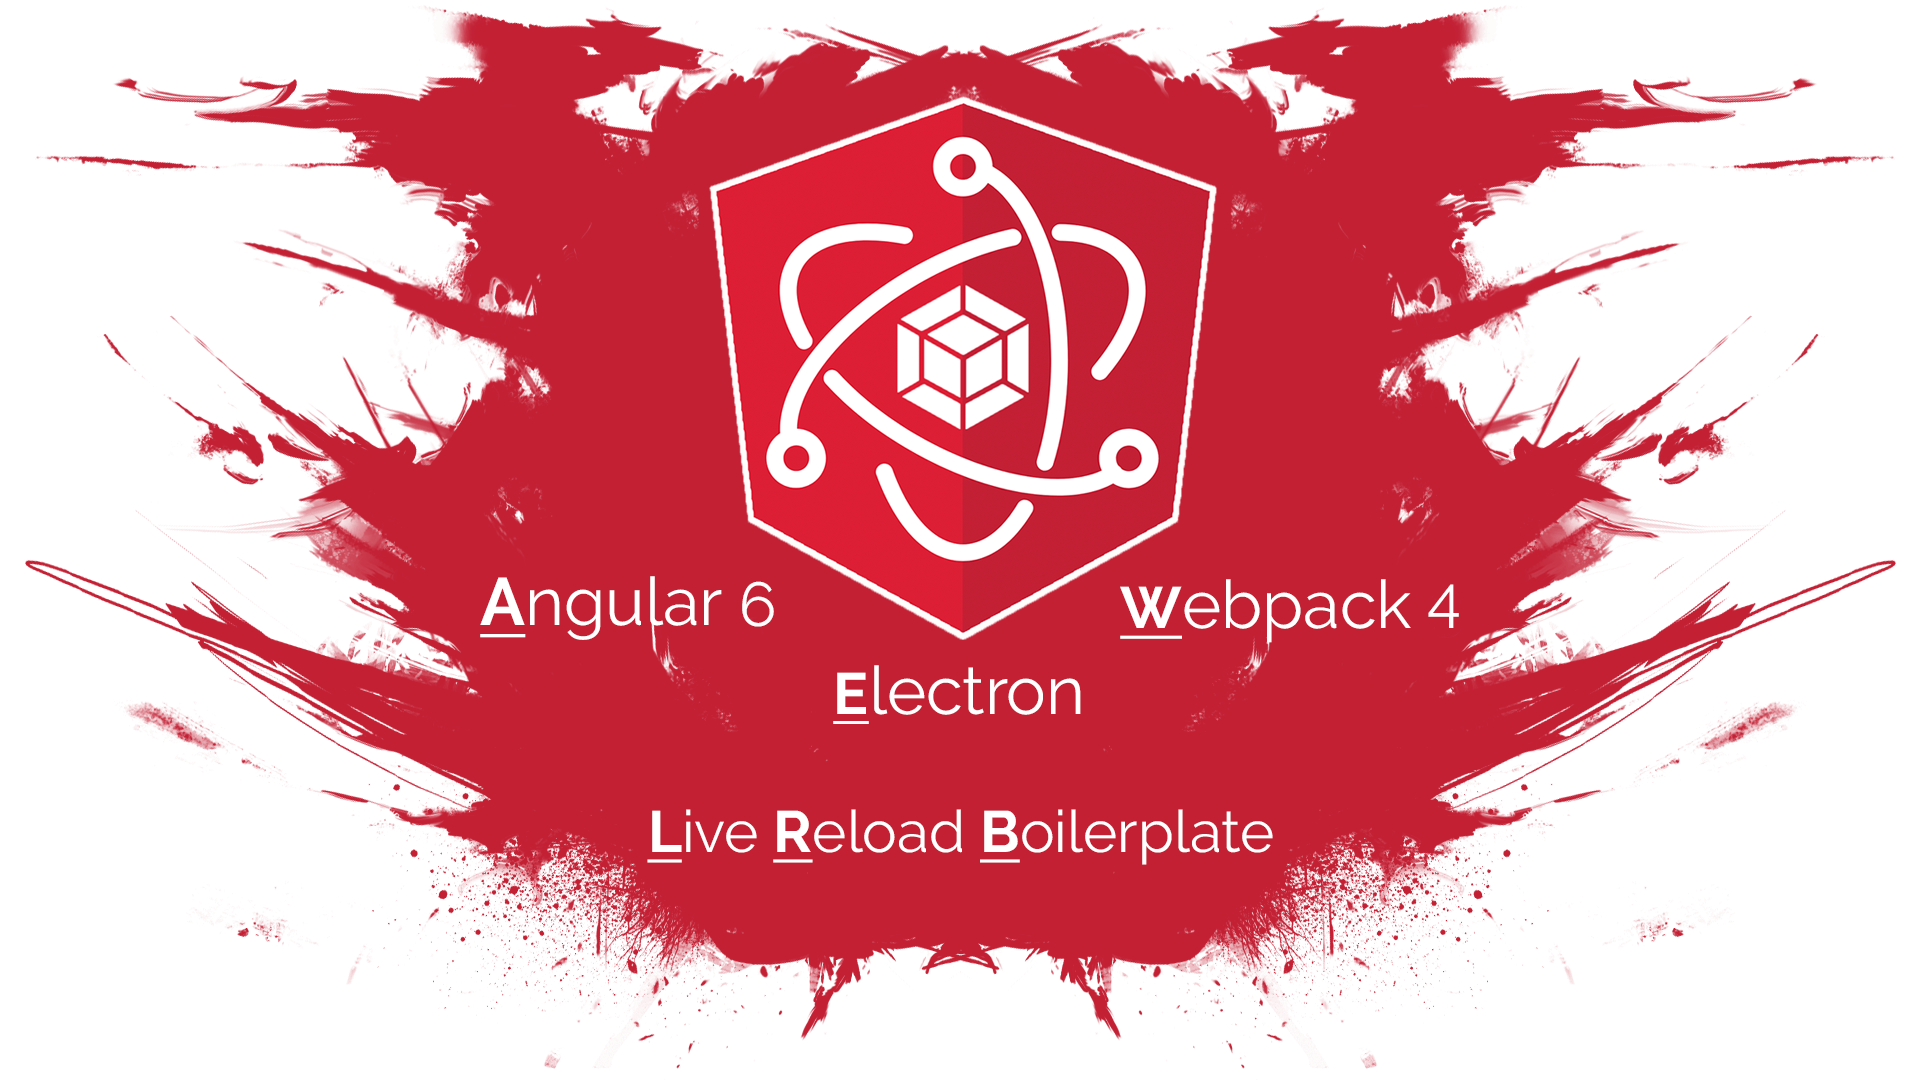 GitHub - lbassin/electron-angular-webpack: A simple kit for